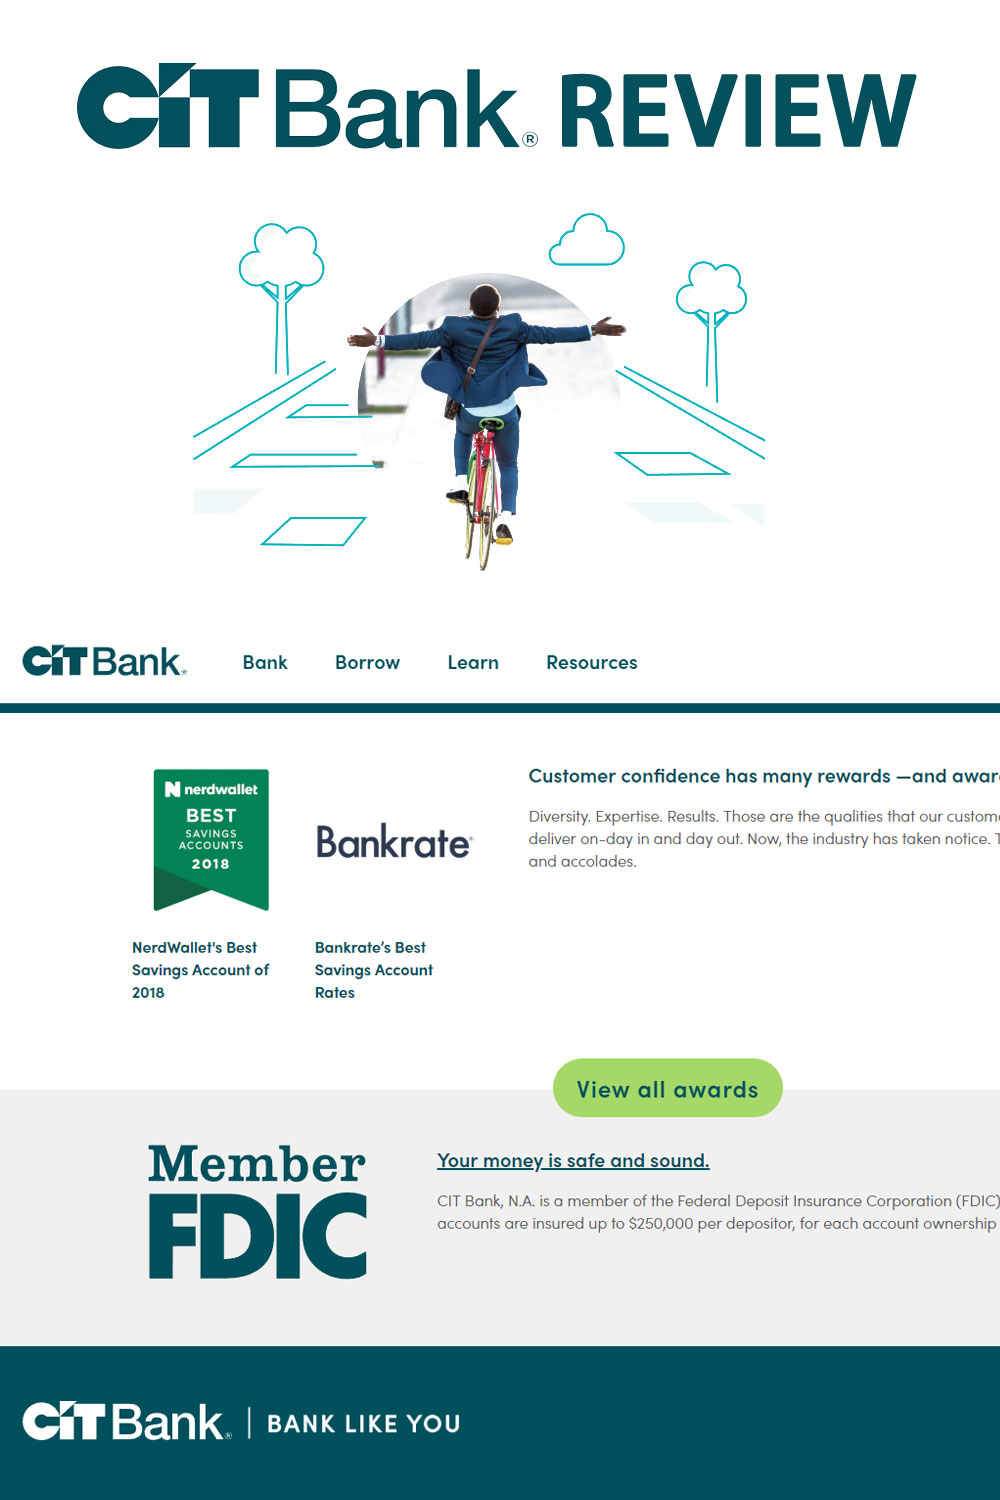 CIT Bank Review: High Interest Rates With No Recurring Fees